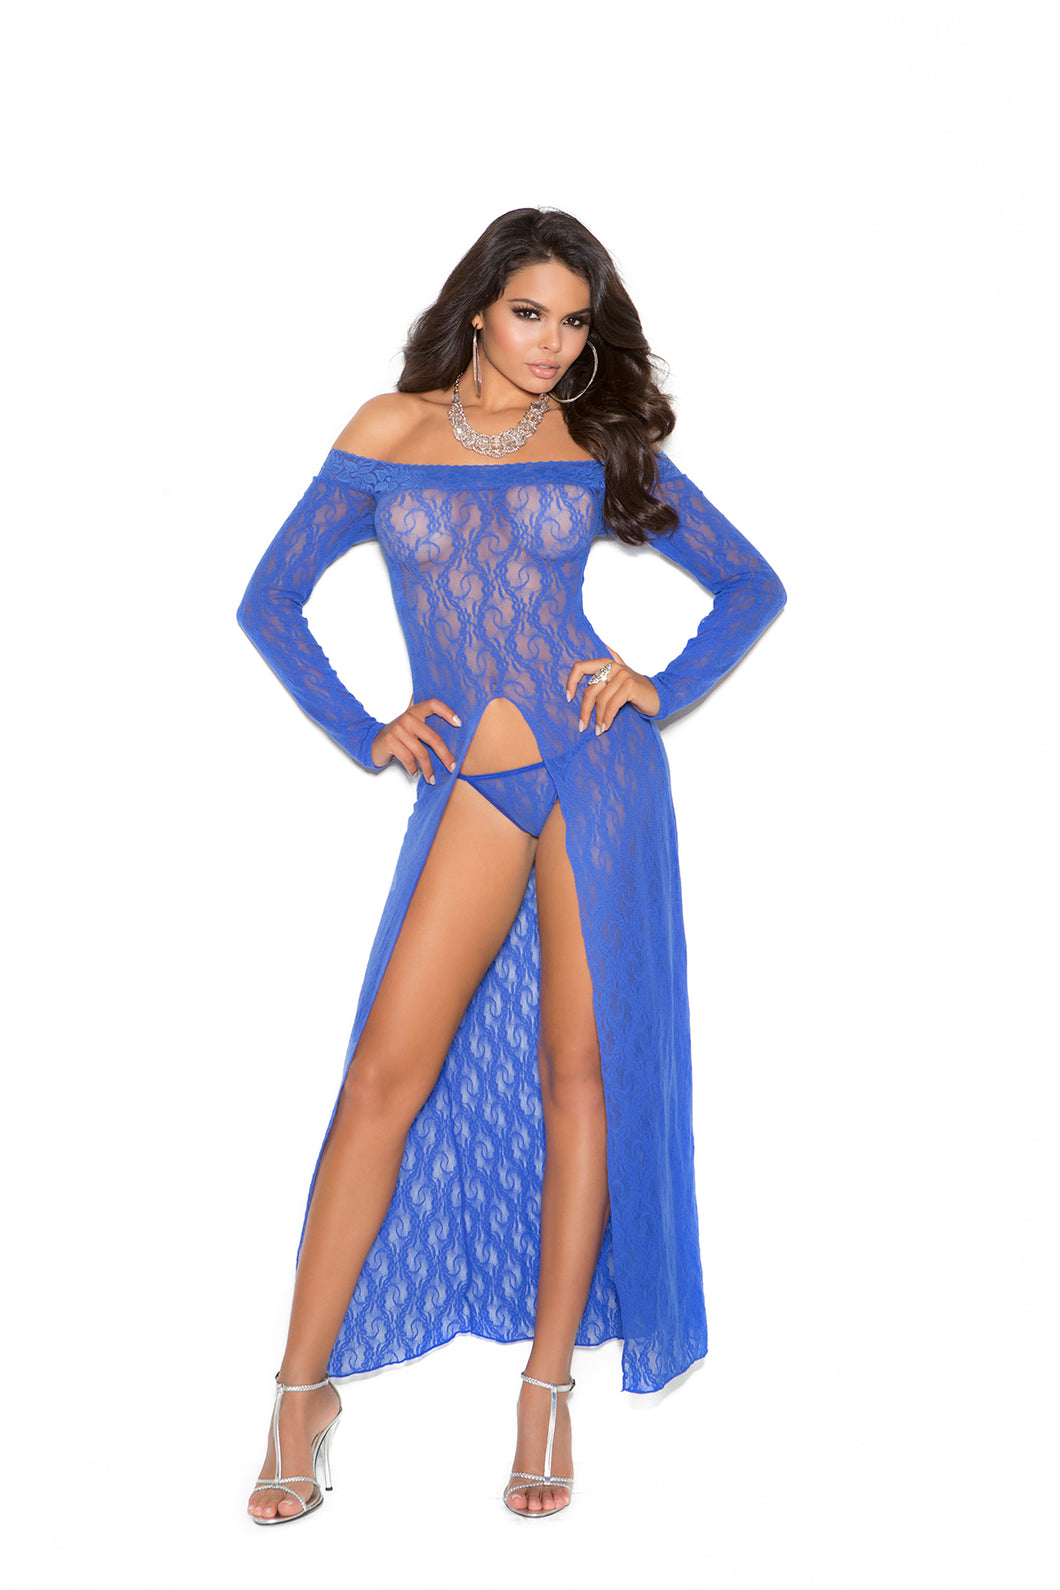 Long Sleeve Lace Gown - One Size - Blue EM-1519